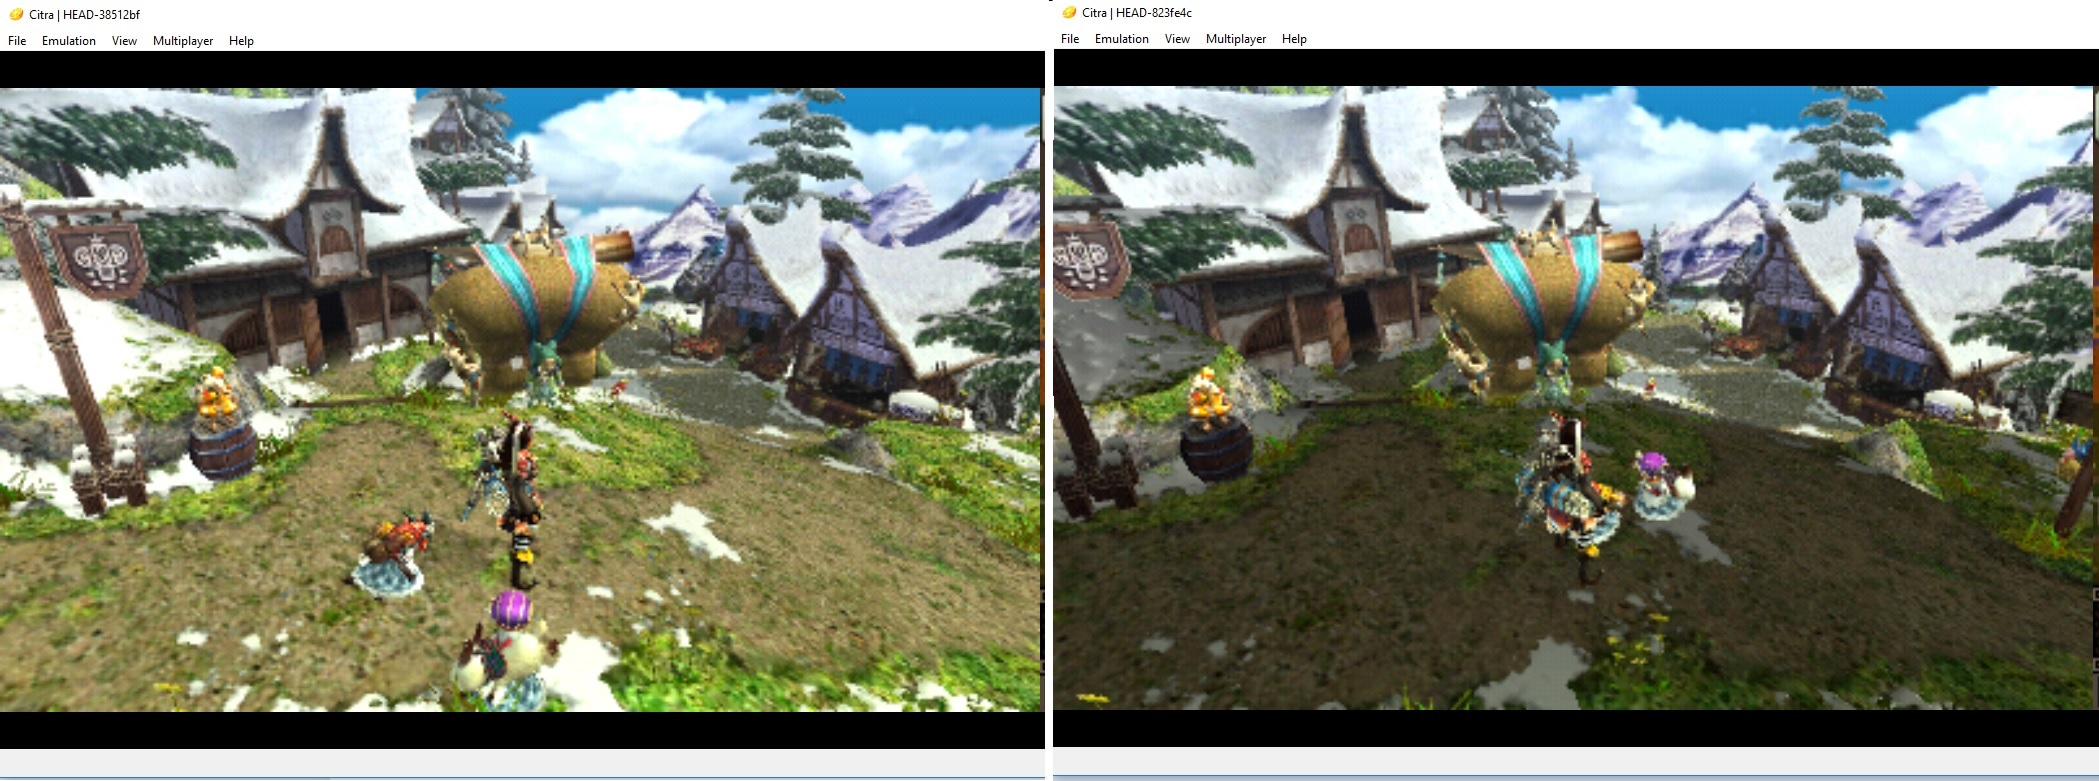 Citra latest unofficial build   subtlePlayer  2019-06-23